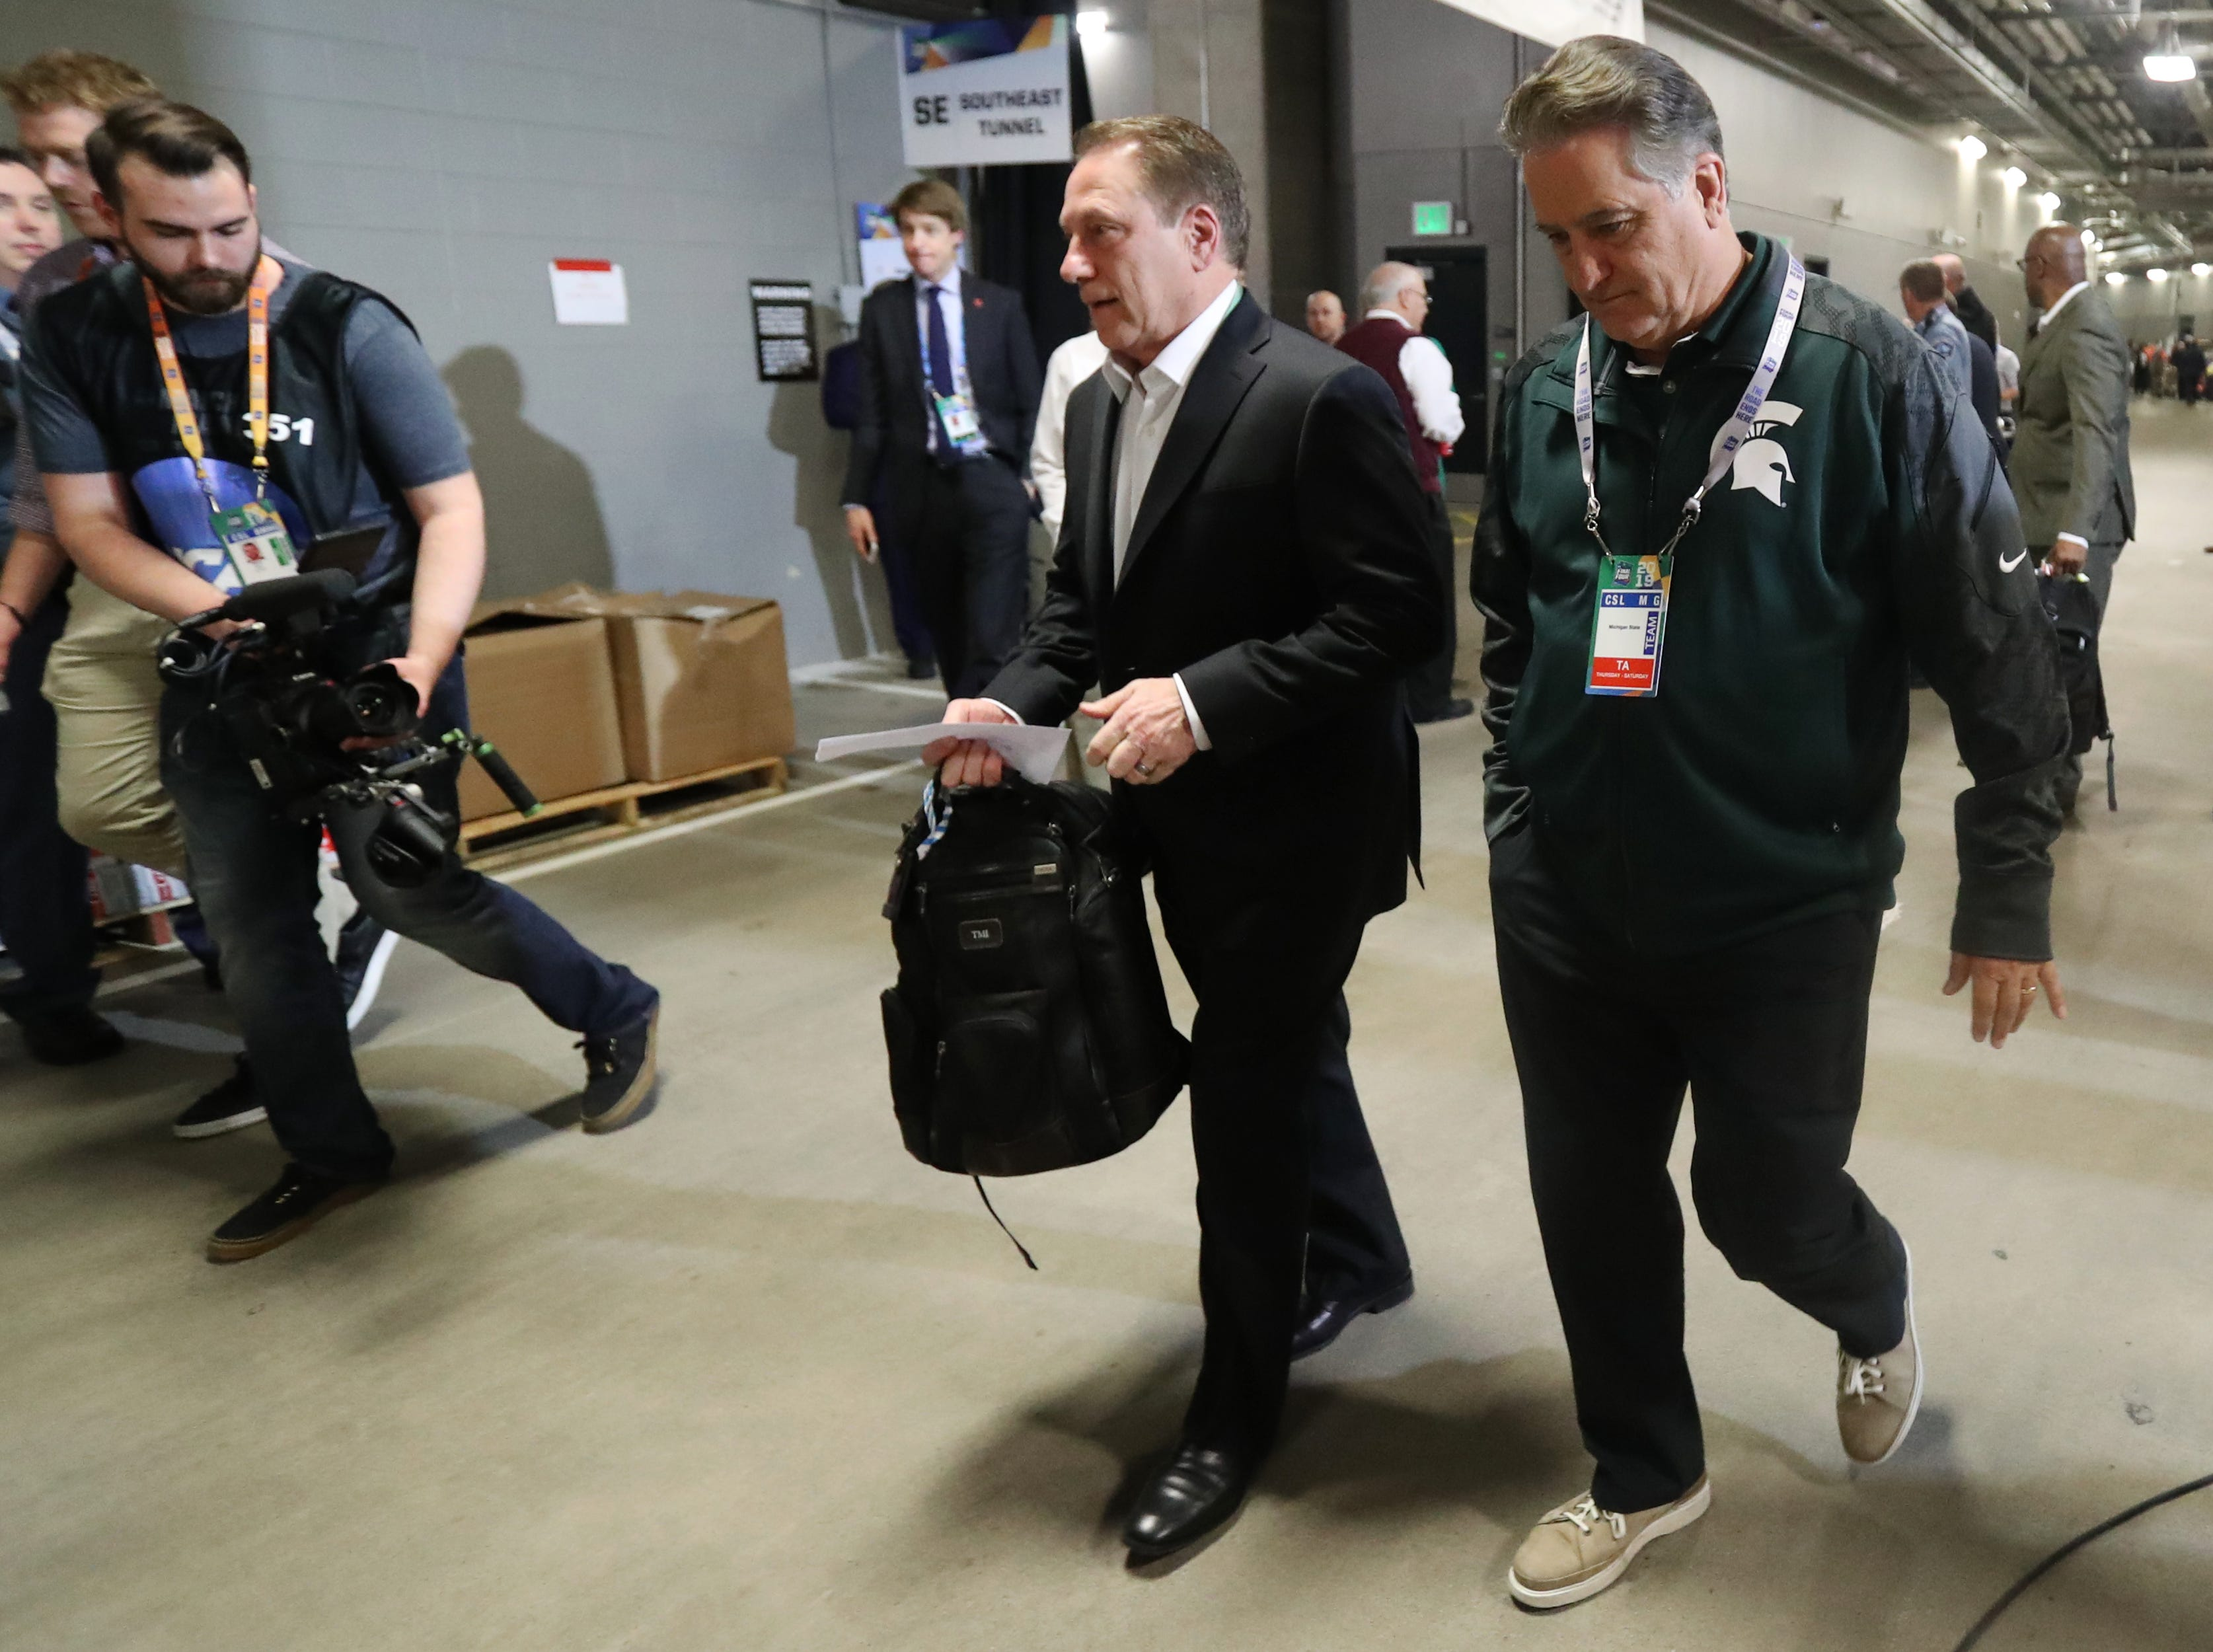 Michigan State head coach Tom Izzo walks with former Detroit Lions coach Steve Mariucci as they arrive for the Final Four against Texas Tech at U.S. Bank Stadium in Minneapolis, Minnesota on Saturday, April 06, 2019.